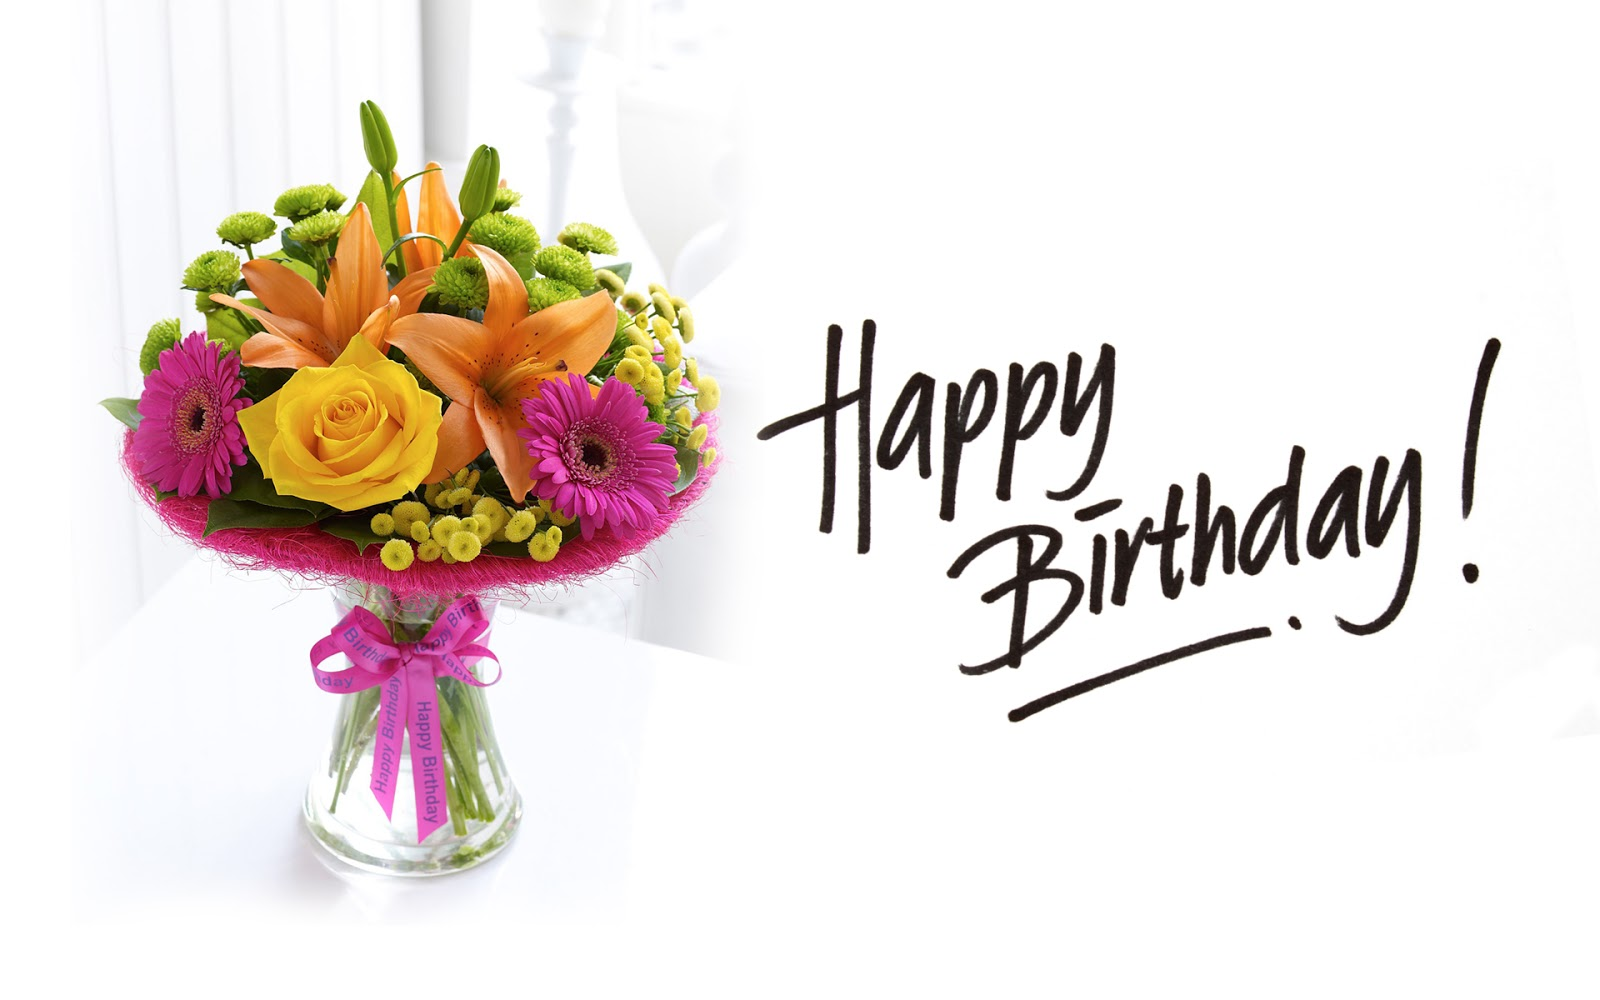 Beautiful Birthday Wallpaper : beautiful-happy-birthday-bouquet-of-flowers-HD-wallpaper-image.jpg